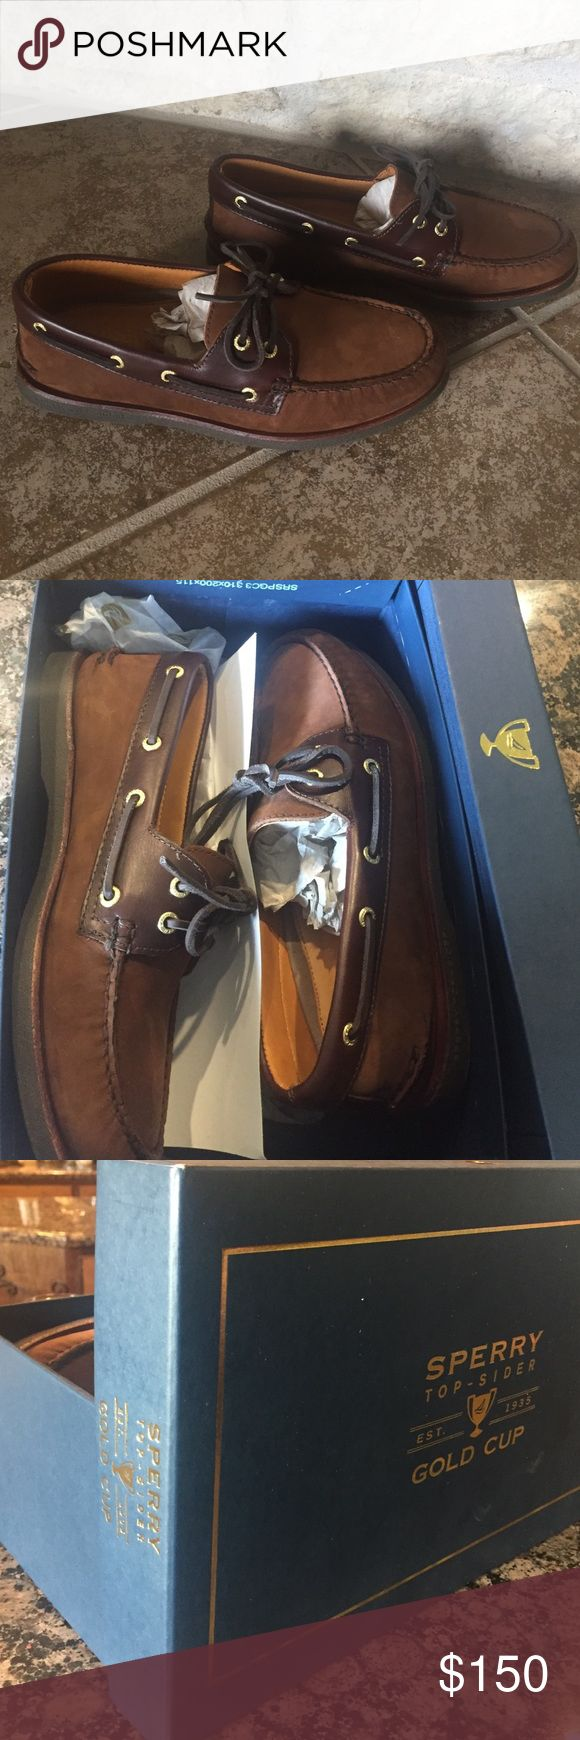 Sperry Gold Cup FLASH SALE!!! Sperry Top-Sider Gold Cup. Brand new and never been worn. Comes in original box Sperry Top-Sider Shoes Boat Shoes